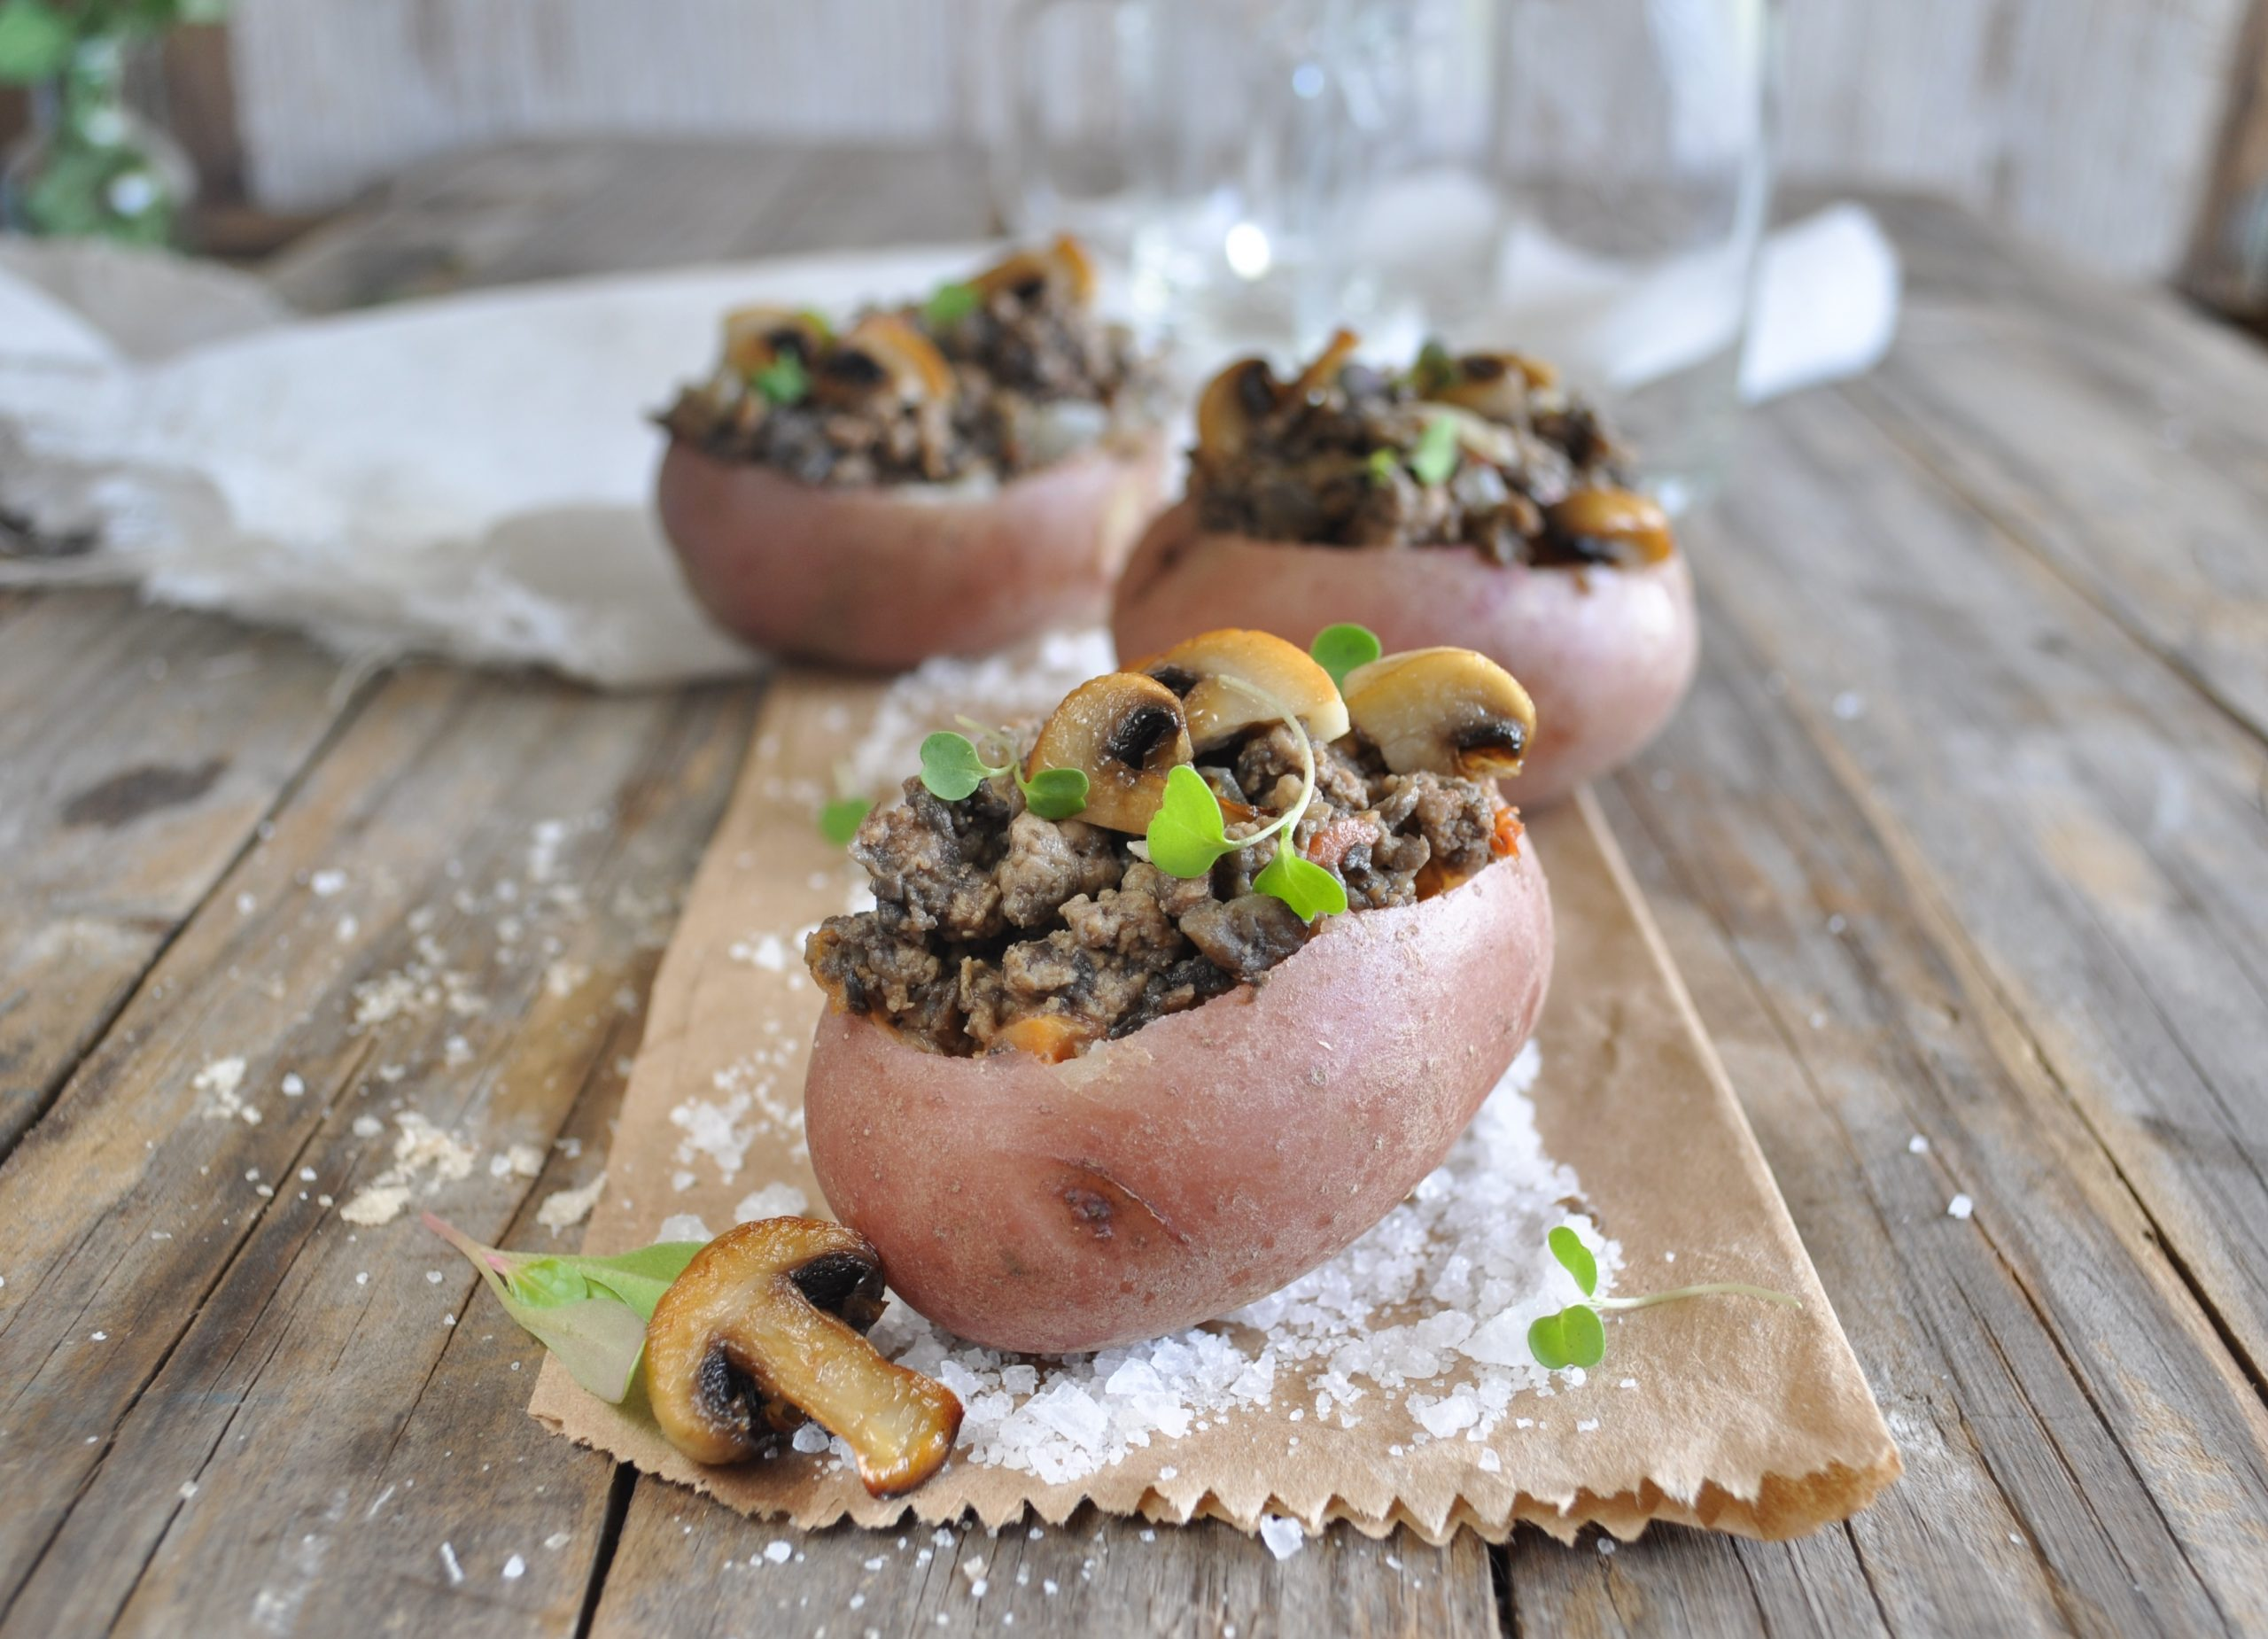 FOOD: Stuffed Potato Recipe By Gina To Celebrate National Baked Potato Day